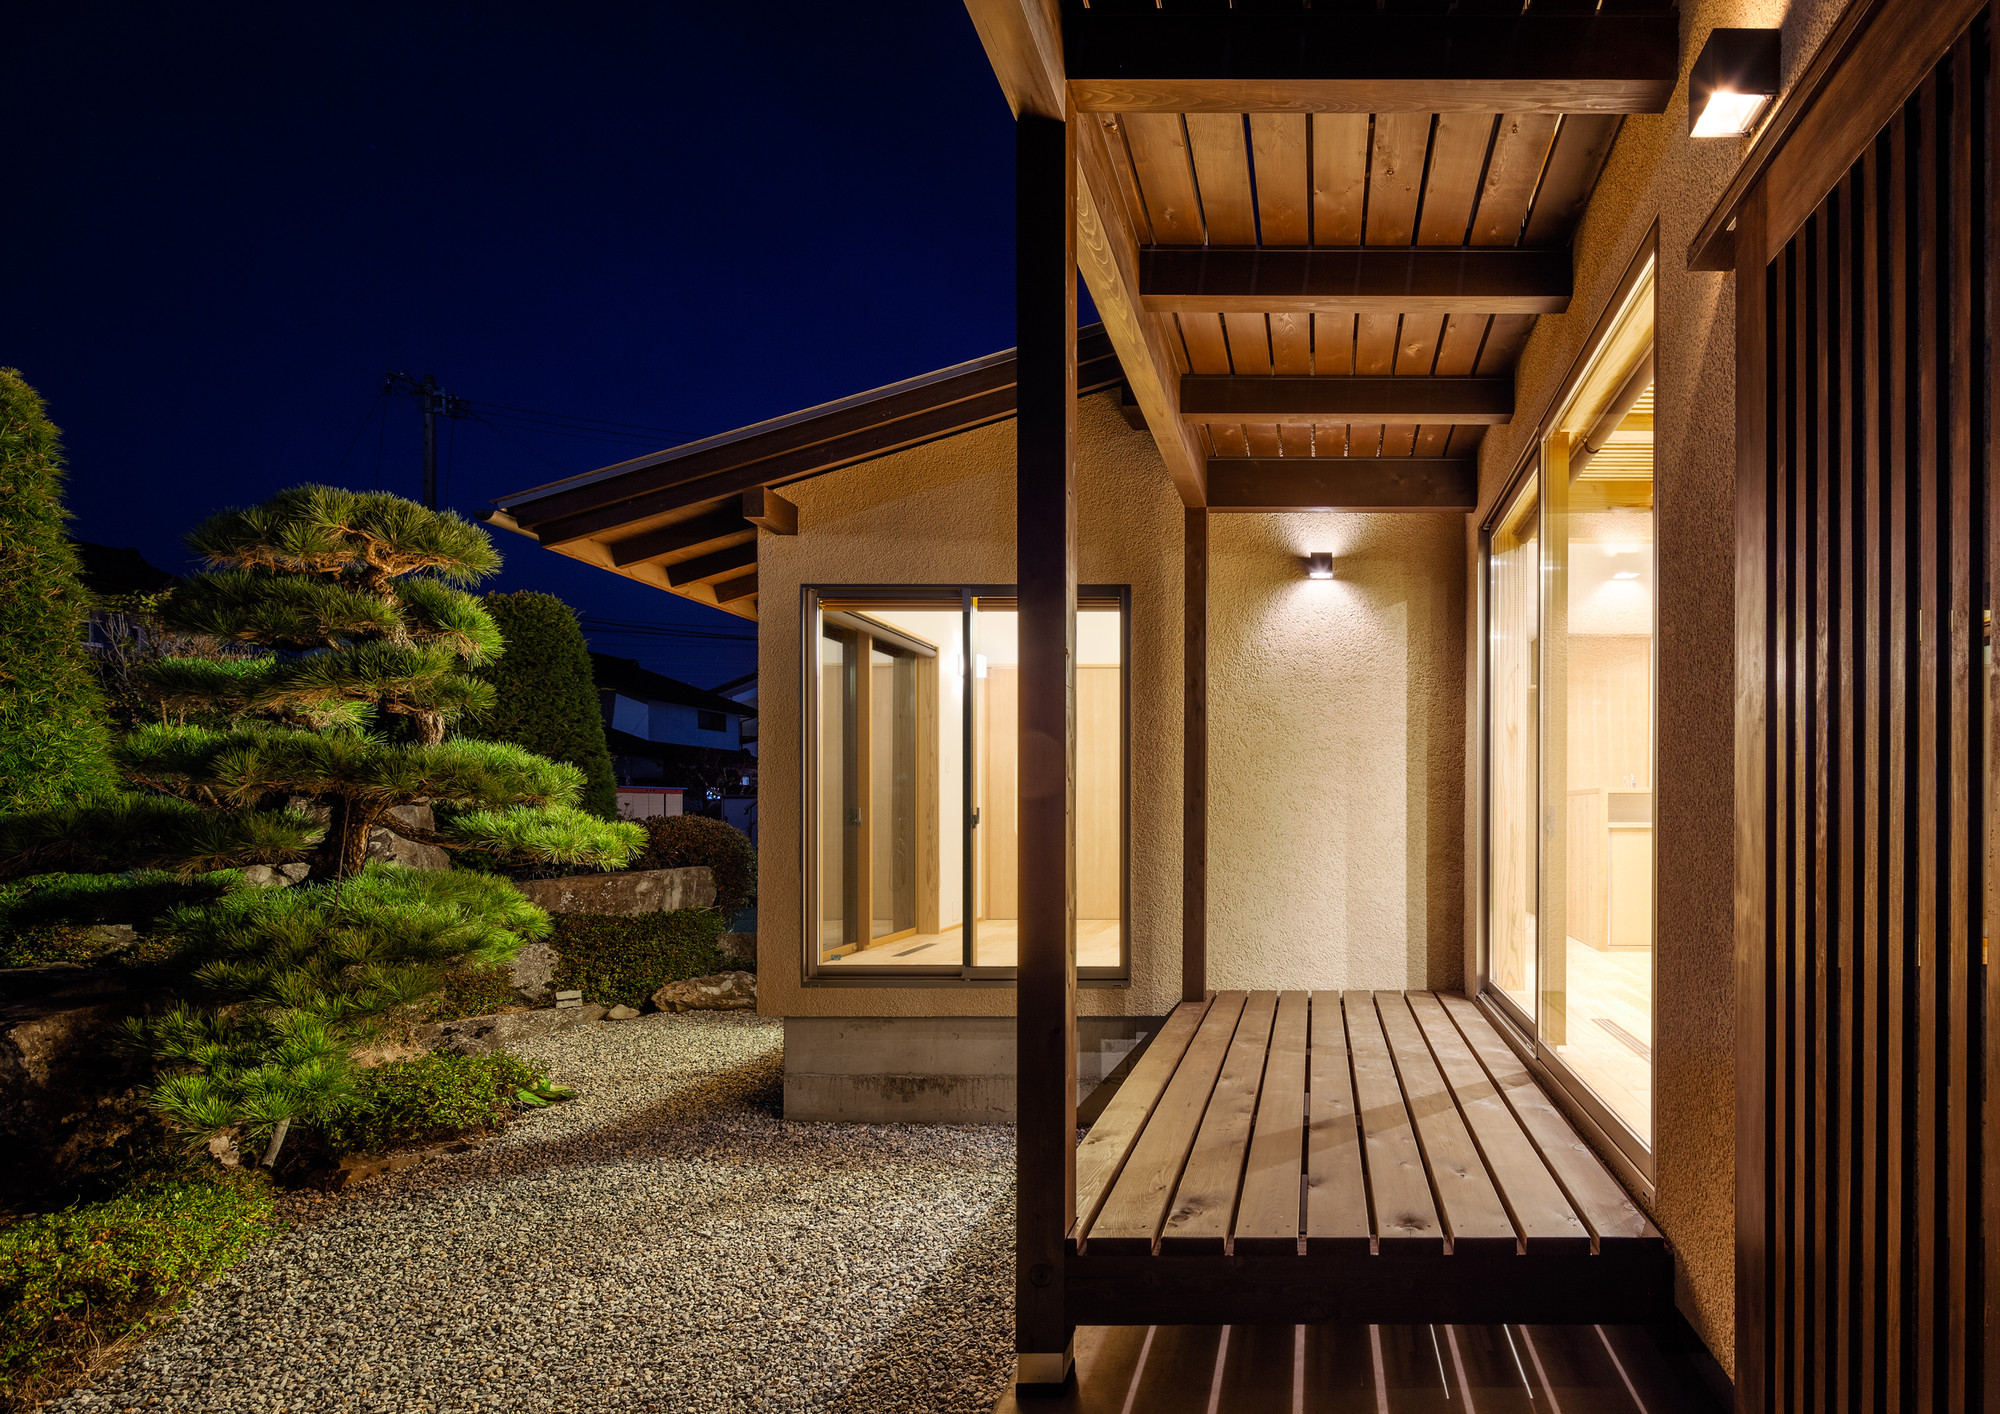 Notable Architectural Design Ideas: The Cocoon House in Nagano ...